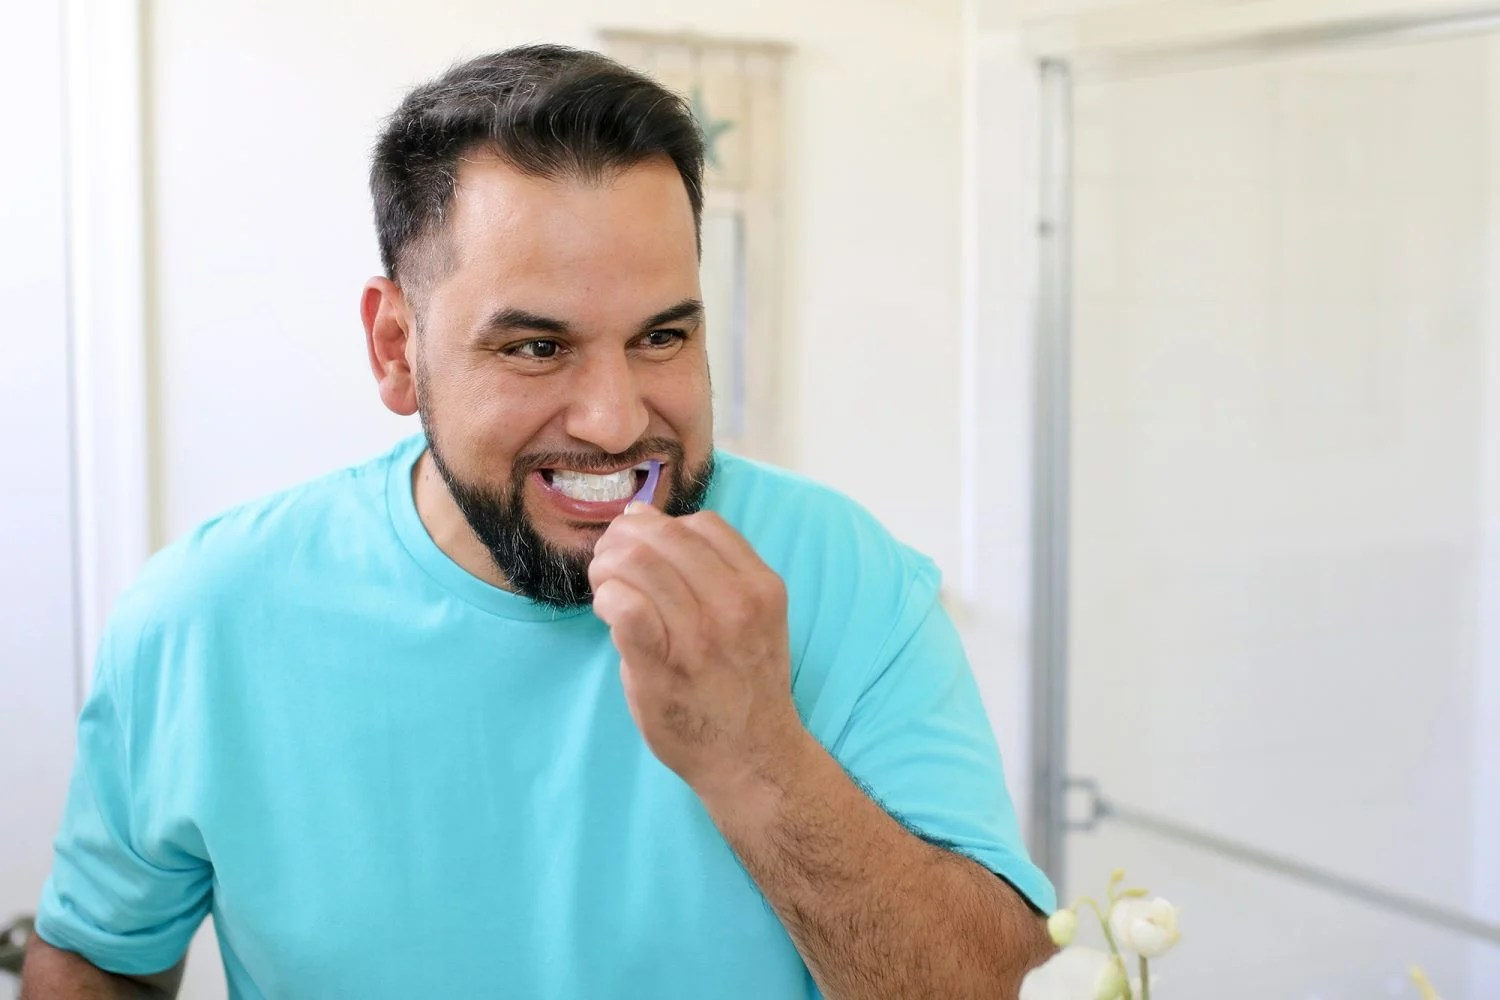 american dental association, ada, mouth healthy, mouth healthy, teeth, healthy teeth, home oral care, ada recommendations, ada approved, dental hygiene, daily routine, family blog, family blogger, mom blog, mom blogger, 2018